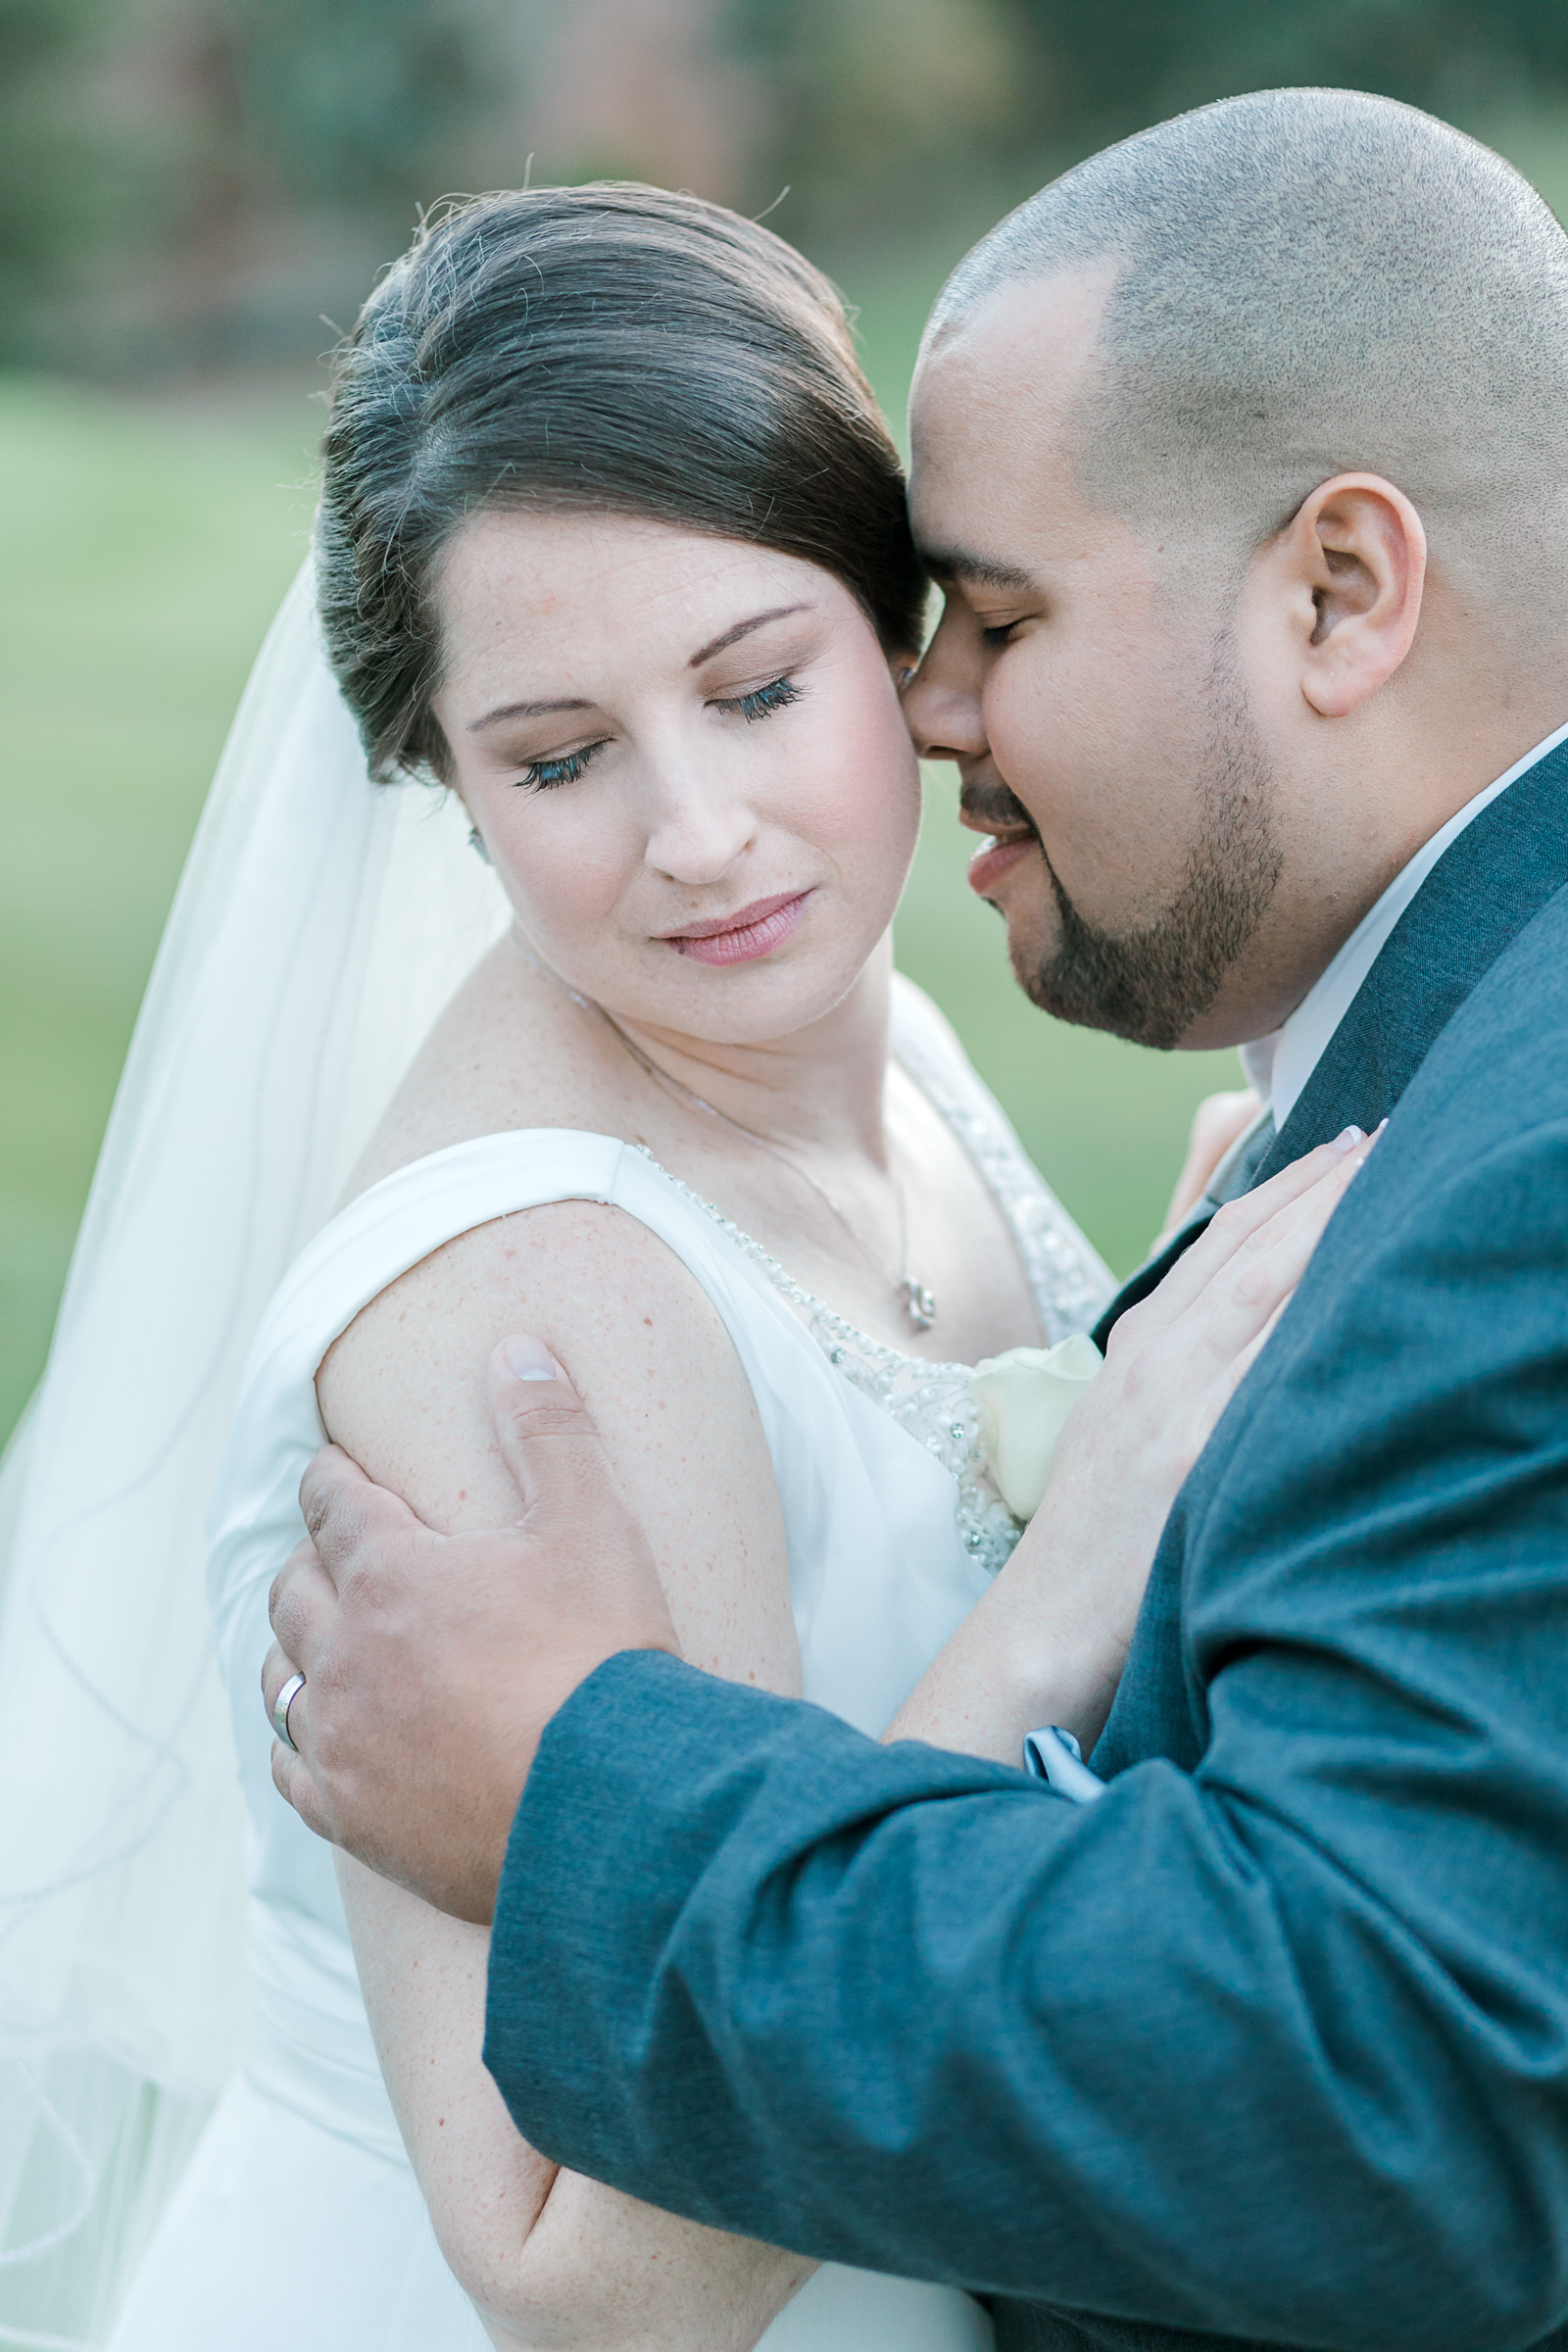 pleasant_valley_country_club_wedding_sutton_erica_pezente_photography-145.jpg